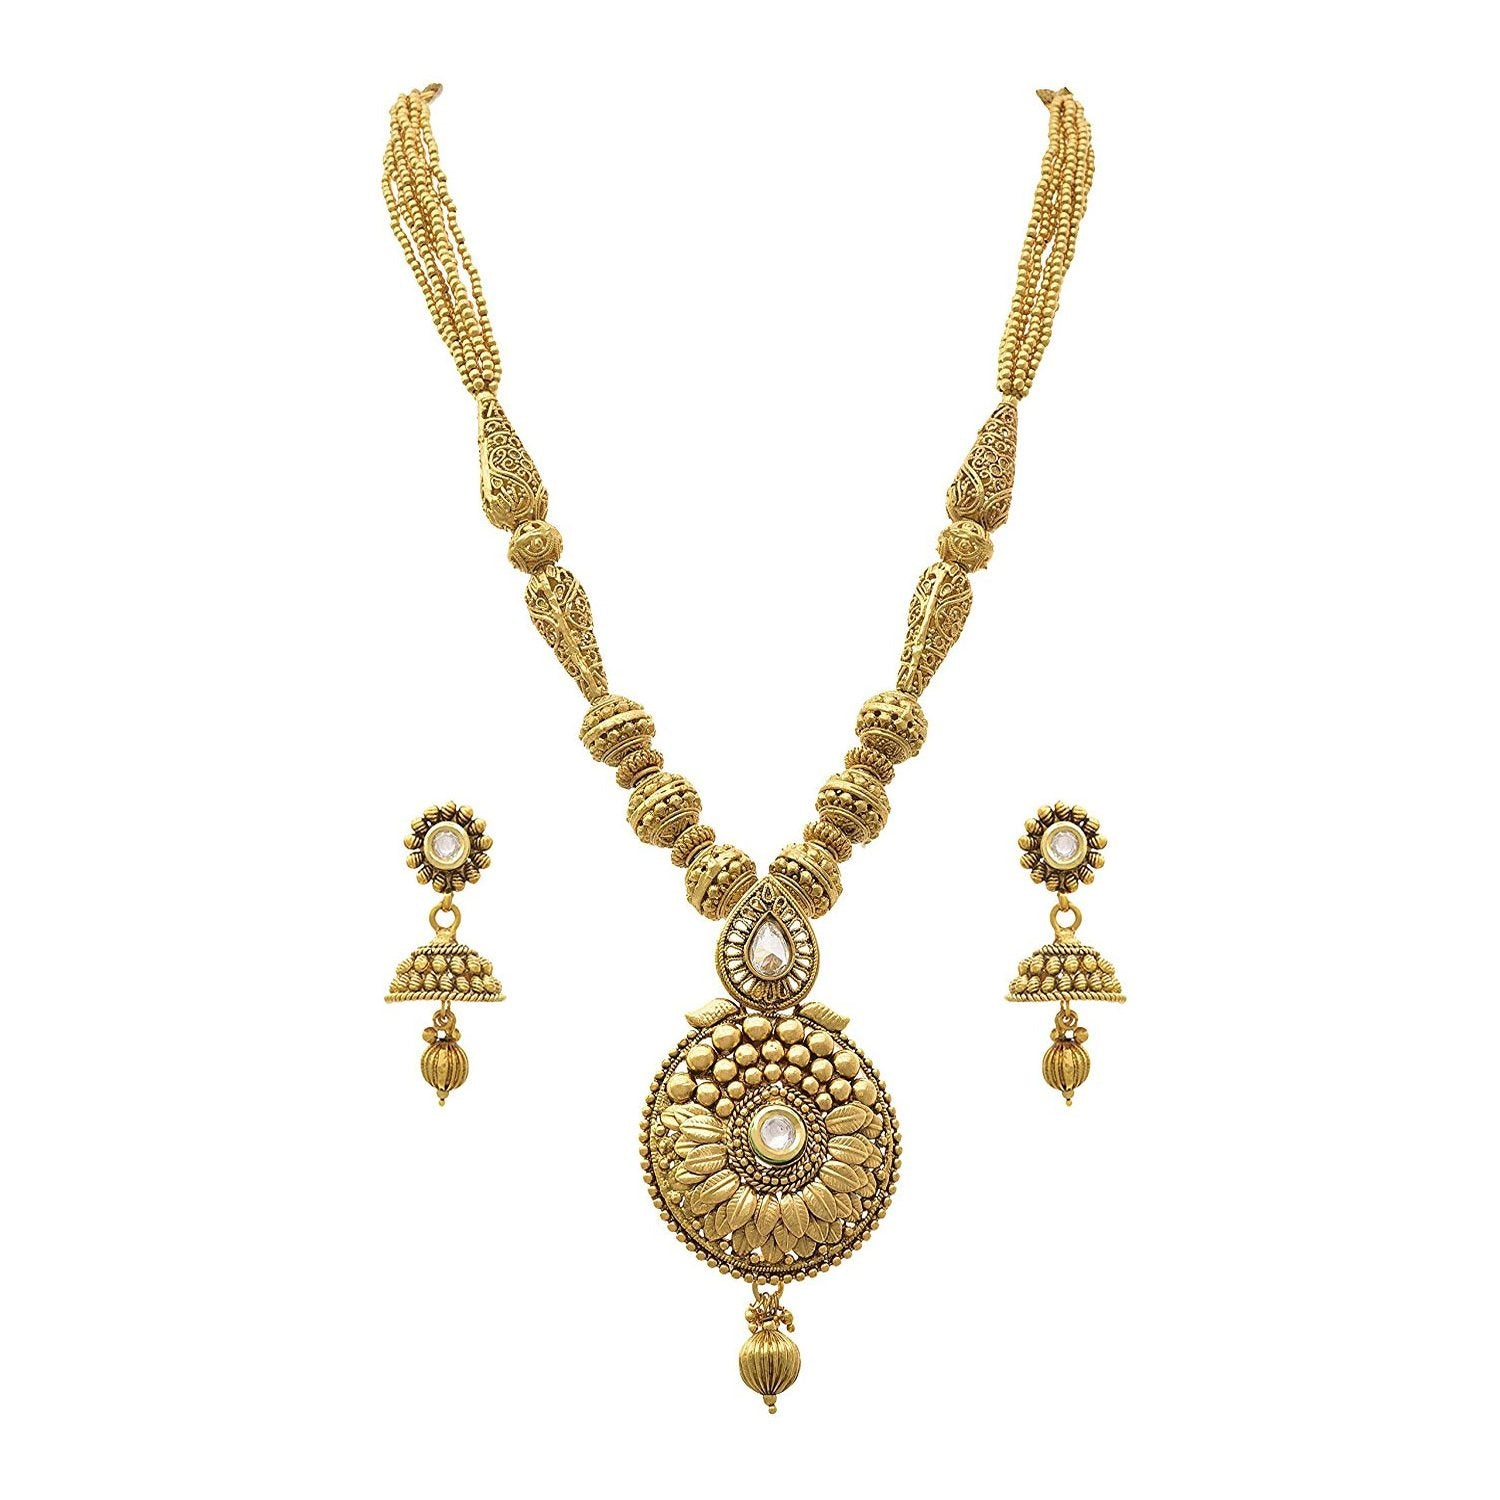 JFL - Traditional Ethnic One Gram Gold Plated Beads Designer Necklace Set for Women & Girls.